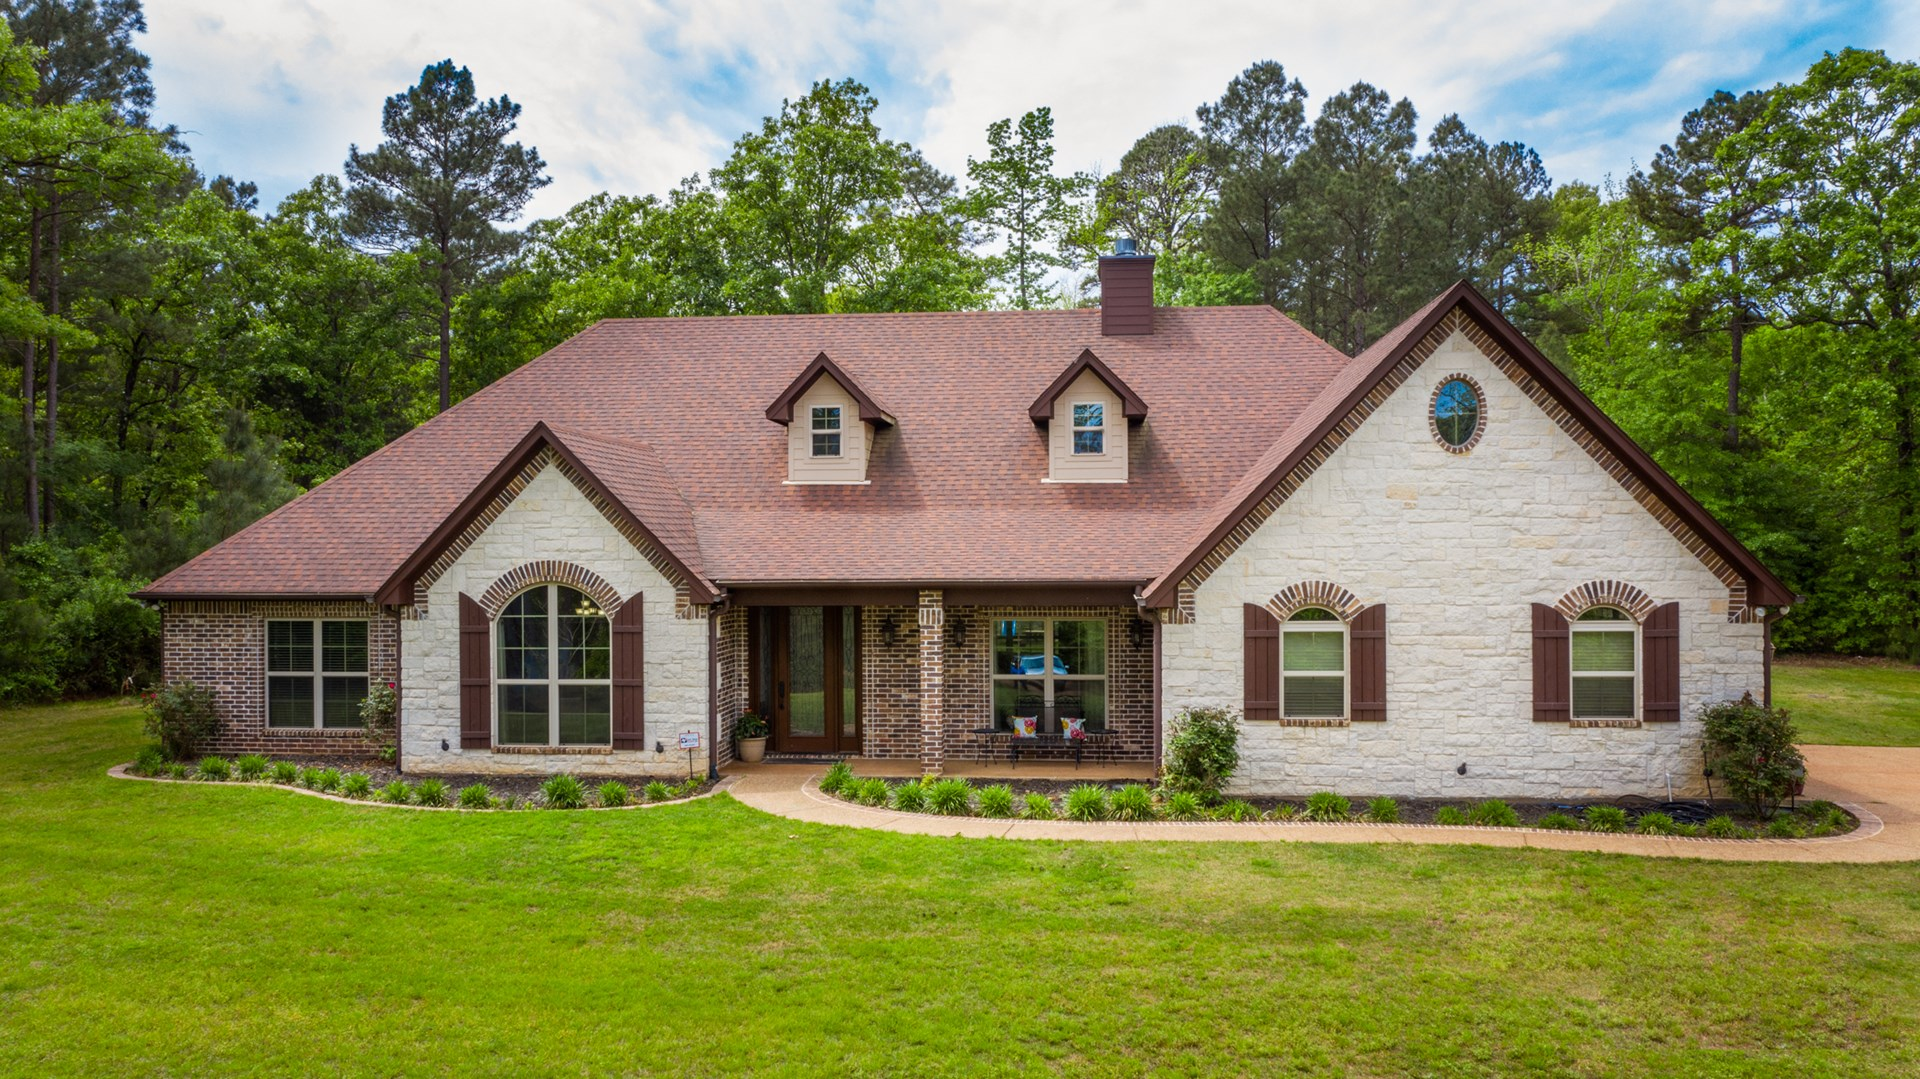 Texas Country Home For Sale in Longview!